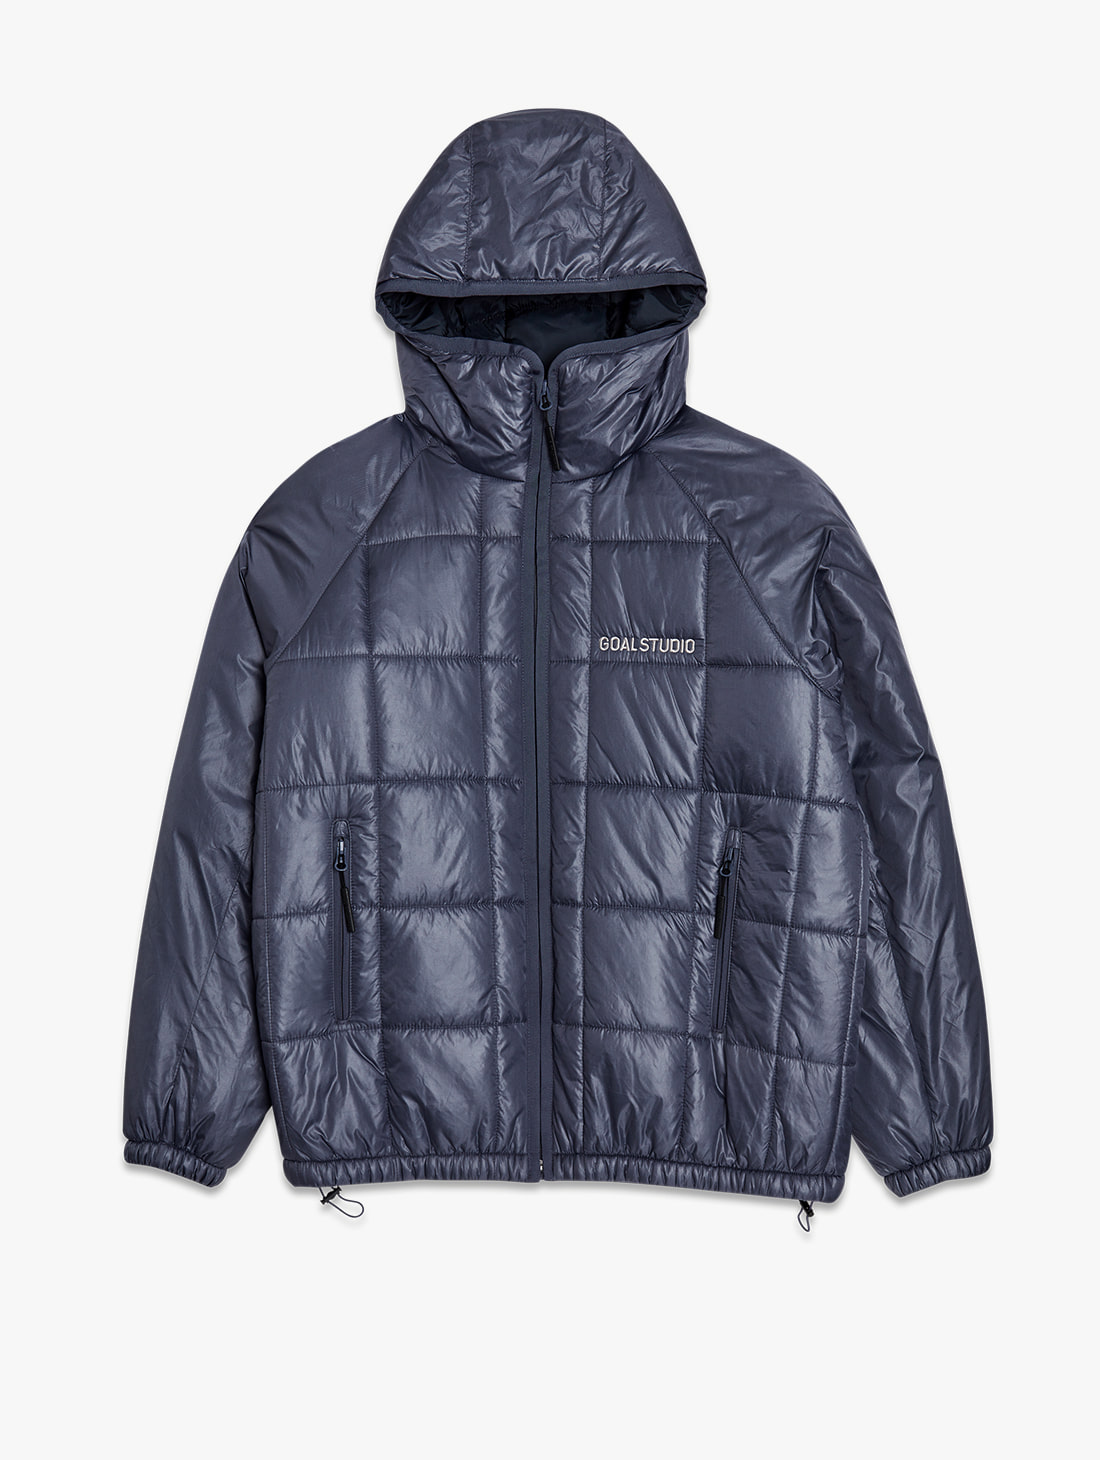 GOALSTUDIO QUILTED PUFFER JACKET (3 Colors)